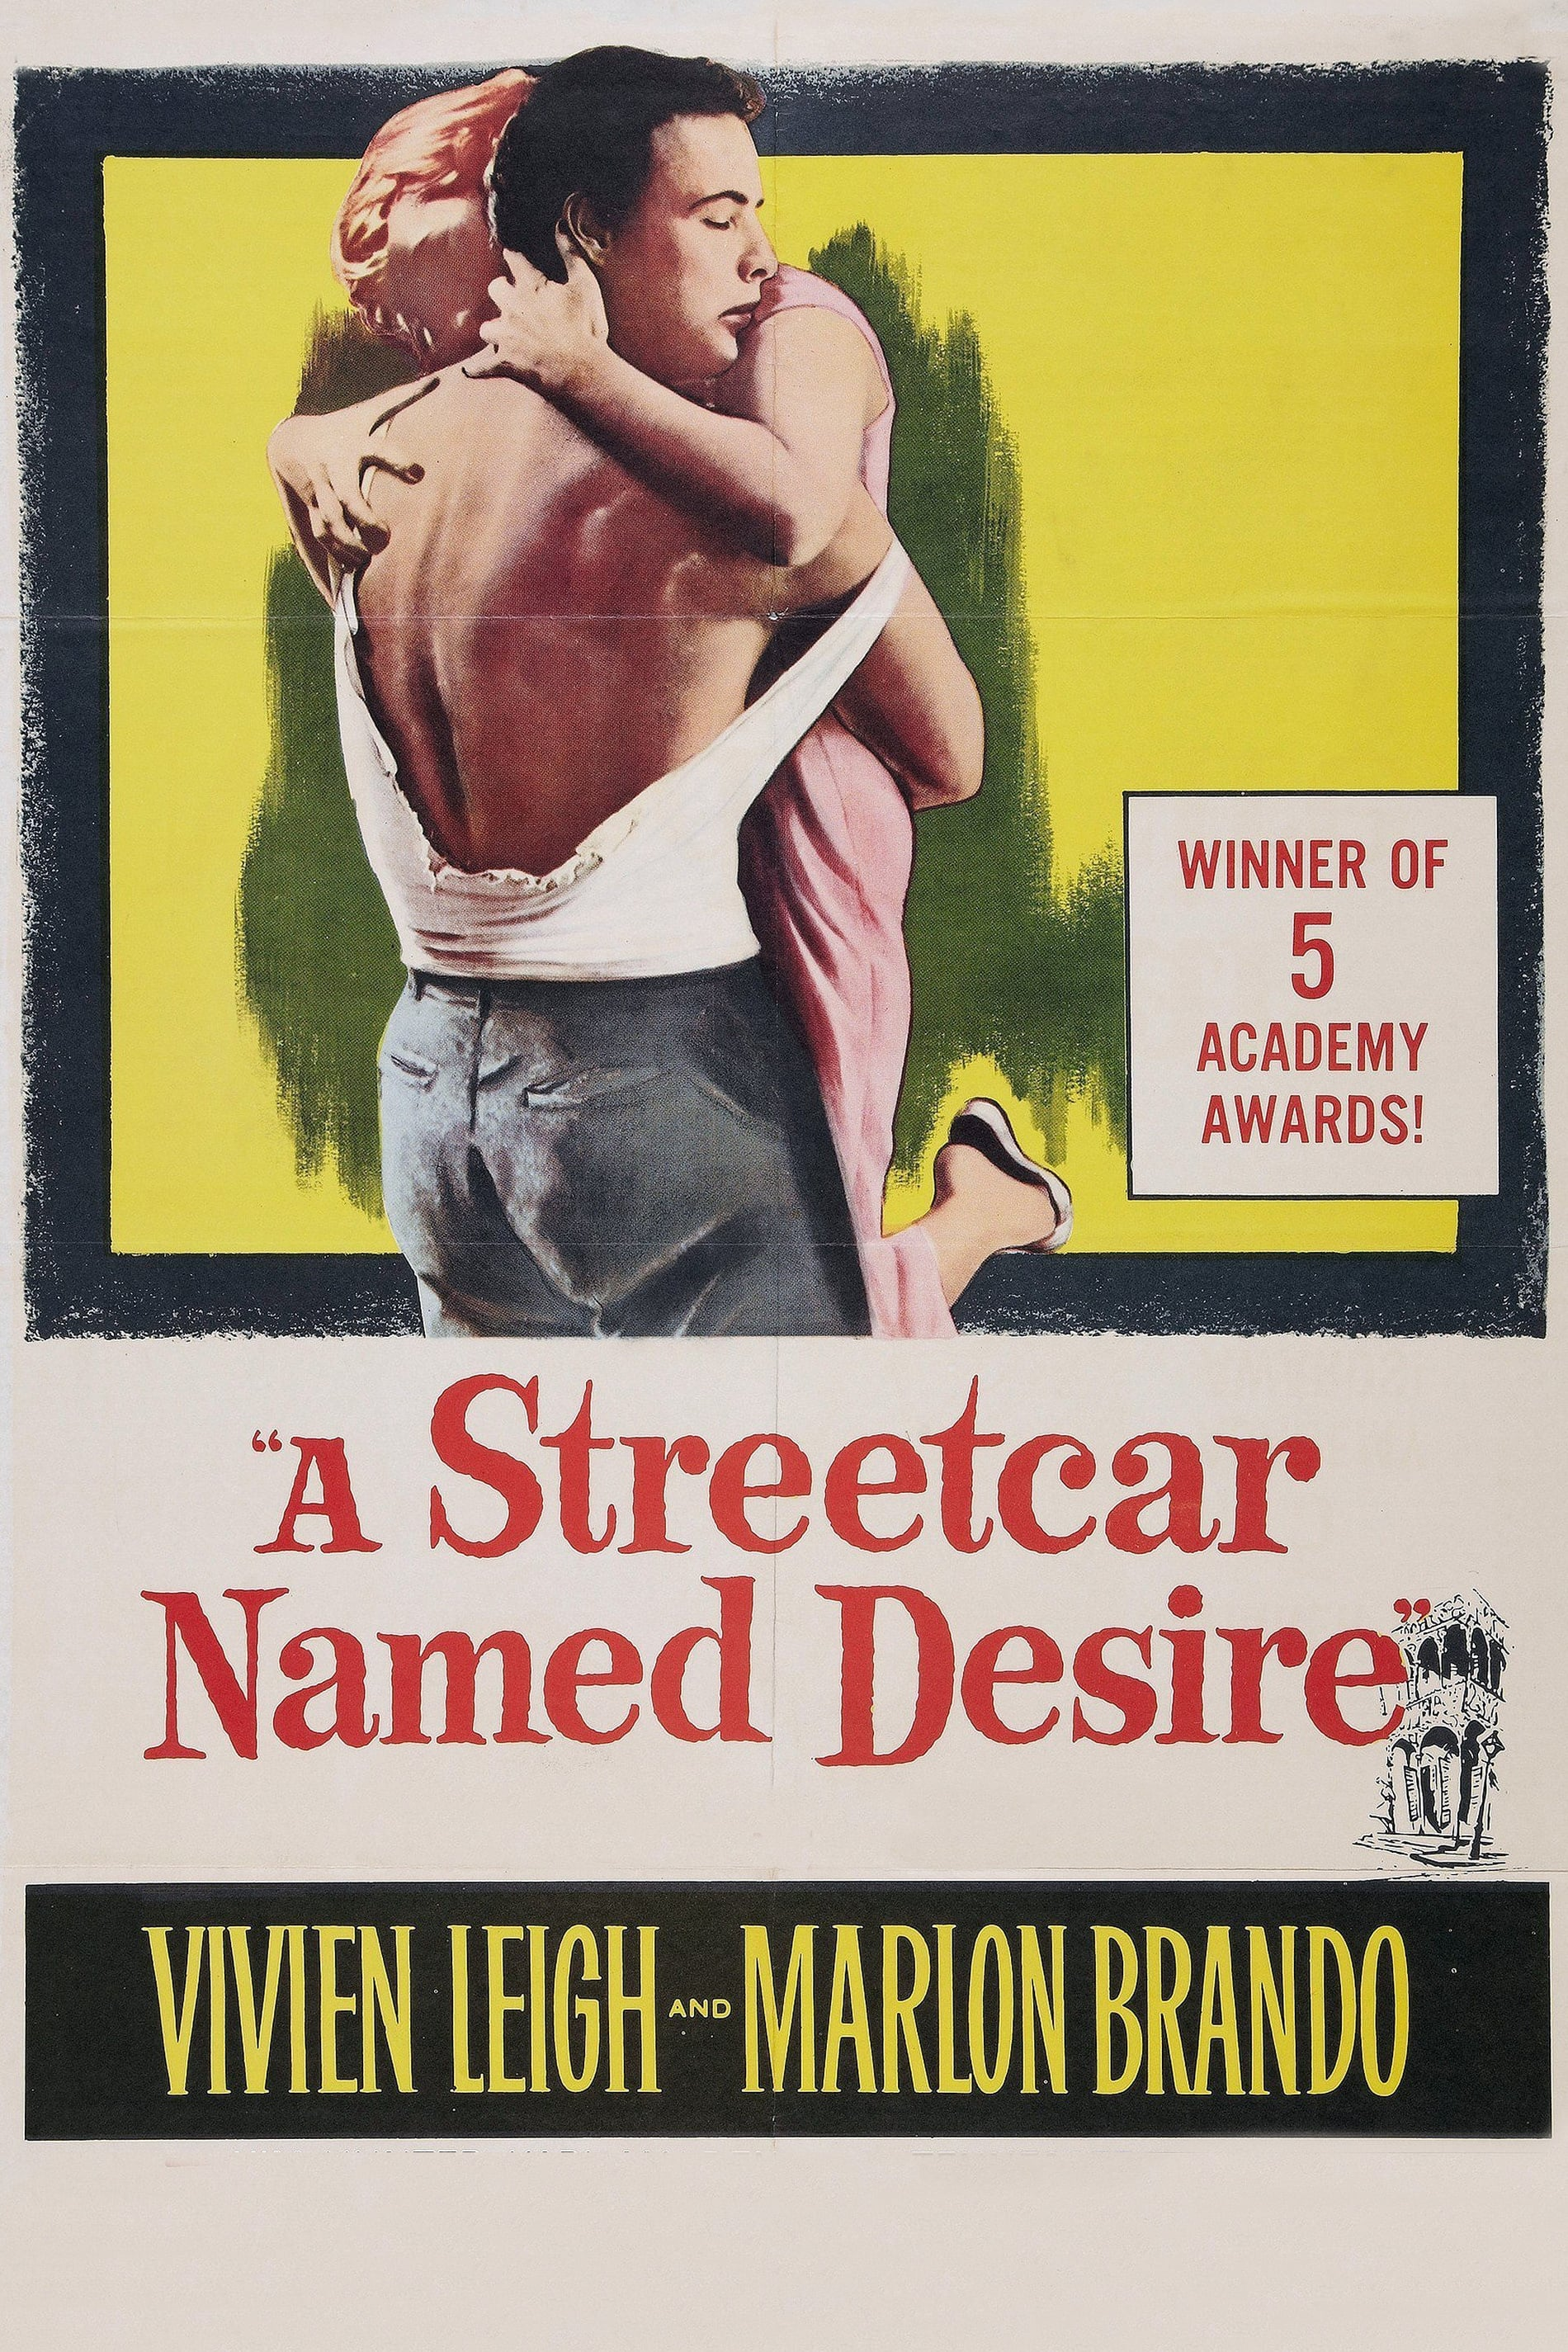 a streetcar named desire and top girl A streetcar named desire is another one of those must see films for film buffs you see the movie everywhere in pop culture especially brando's famous yelling, hey, stella.